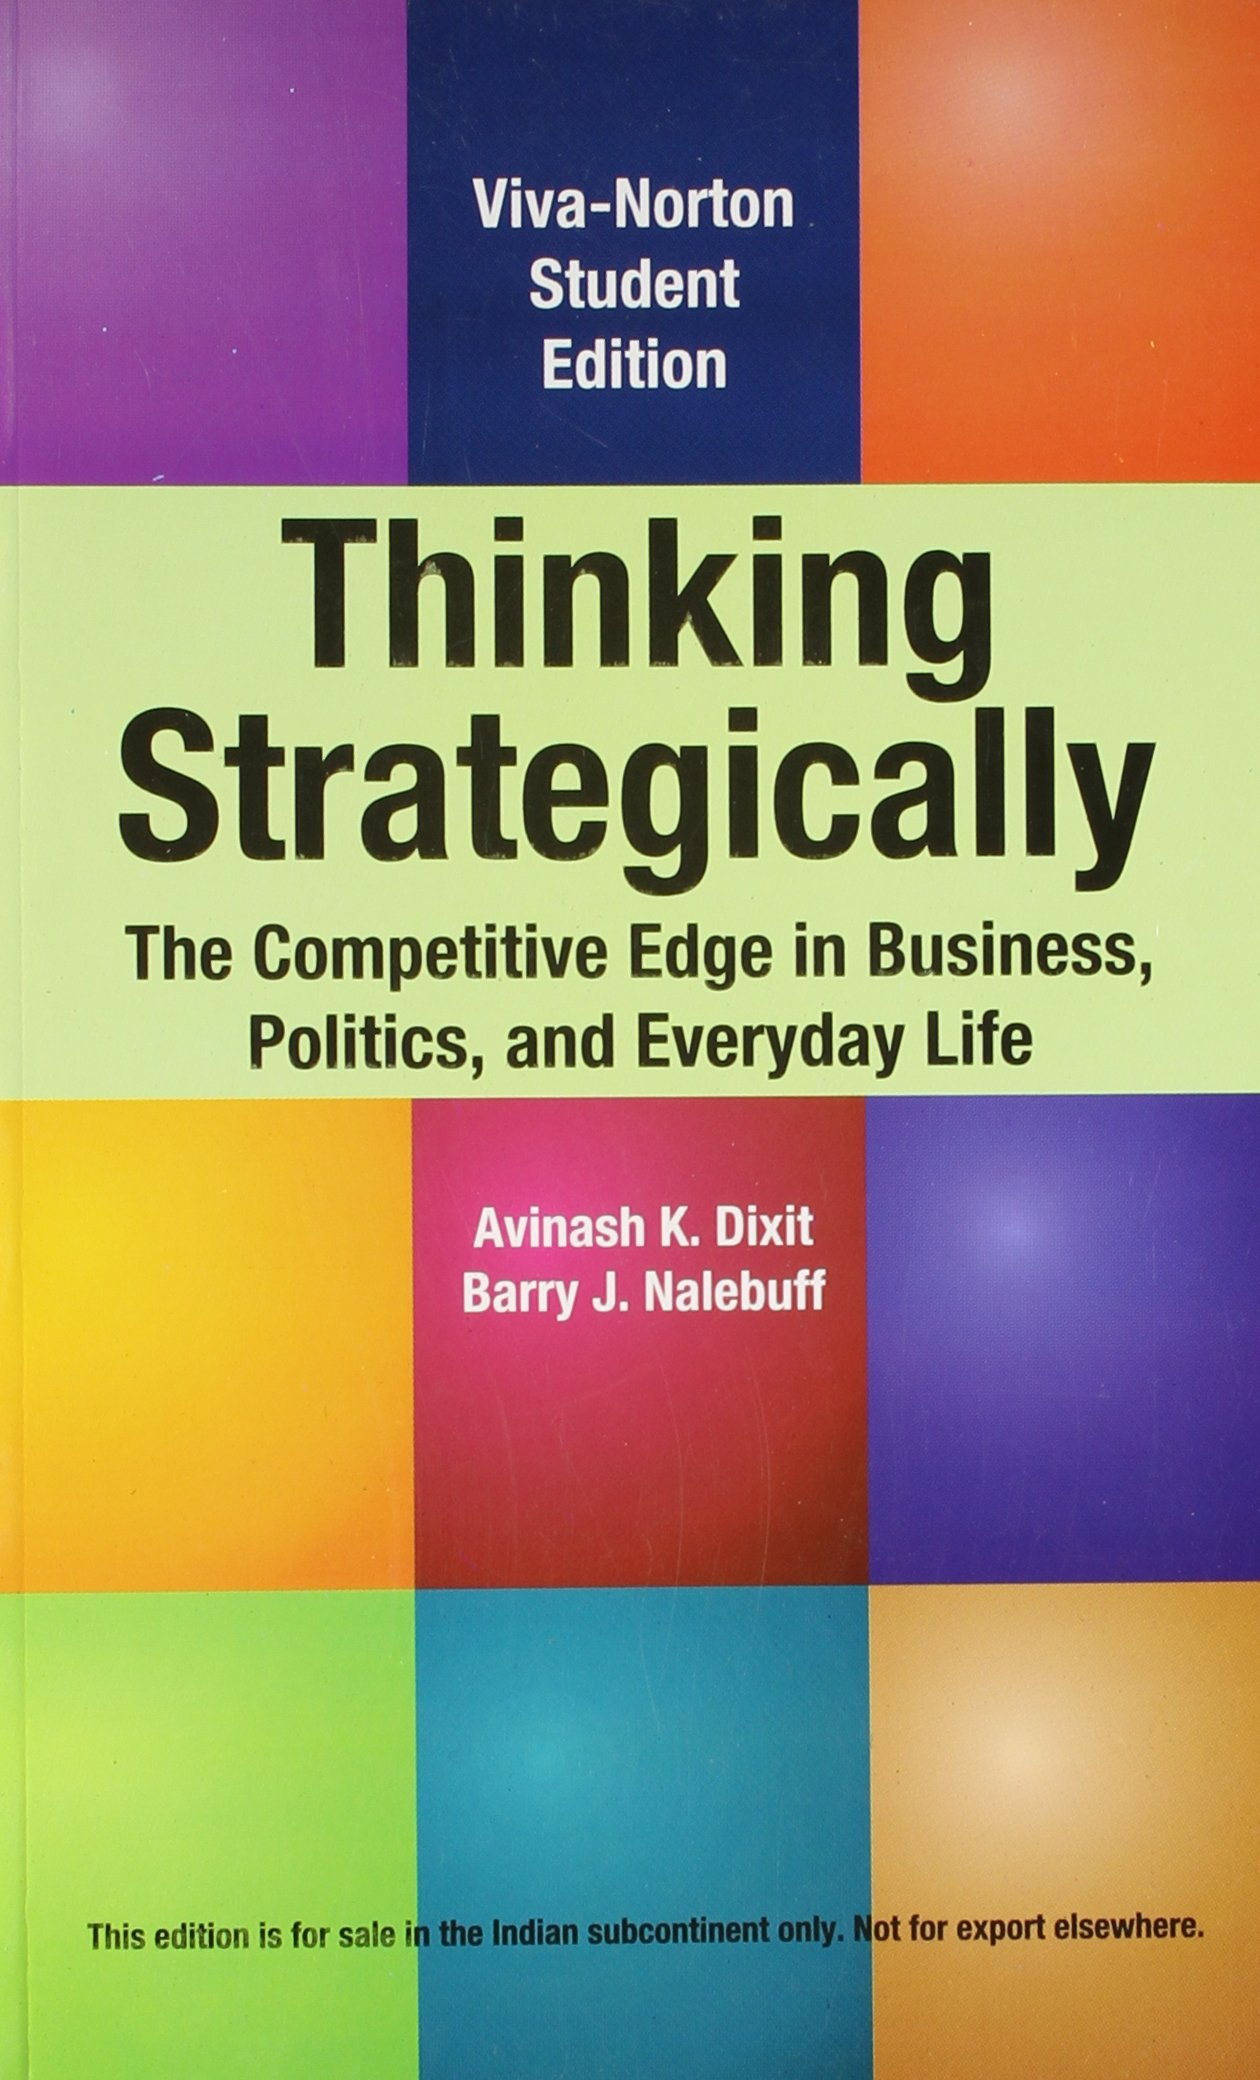 Thinking Strategically: The Competitive Edge in Business, Politics, and Everyday Life: Amazon.es: Avinash K. Dixit, Barry J. Nalebuff: Libros en idiomas extranjeros